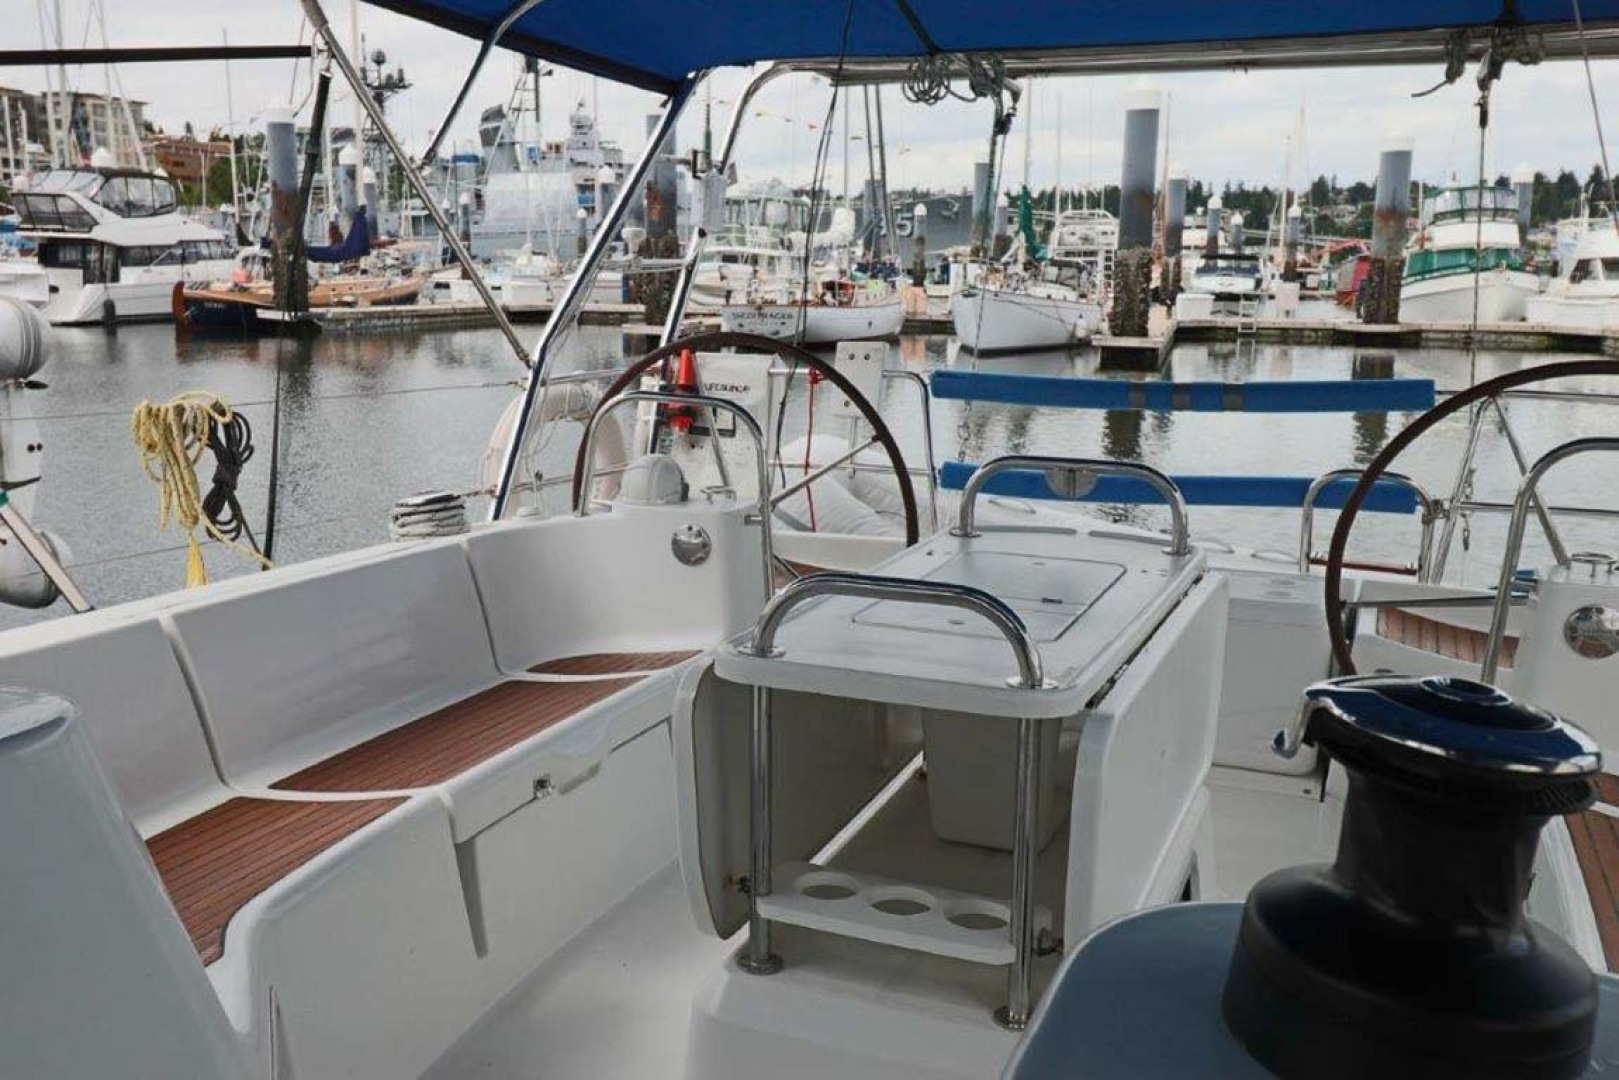 Jeanneau-Sun Odyssey 44i 2010-Intrigue Poulsbo-Washington-United States-Cockpit Seating-1153345 | Thumbnail